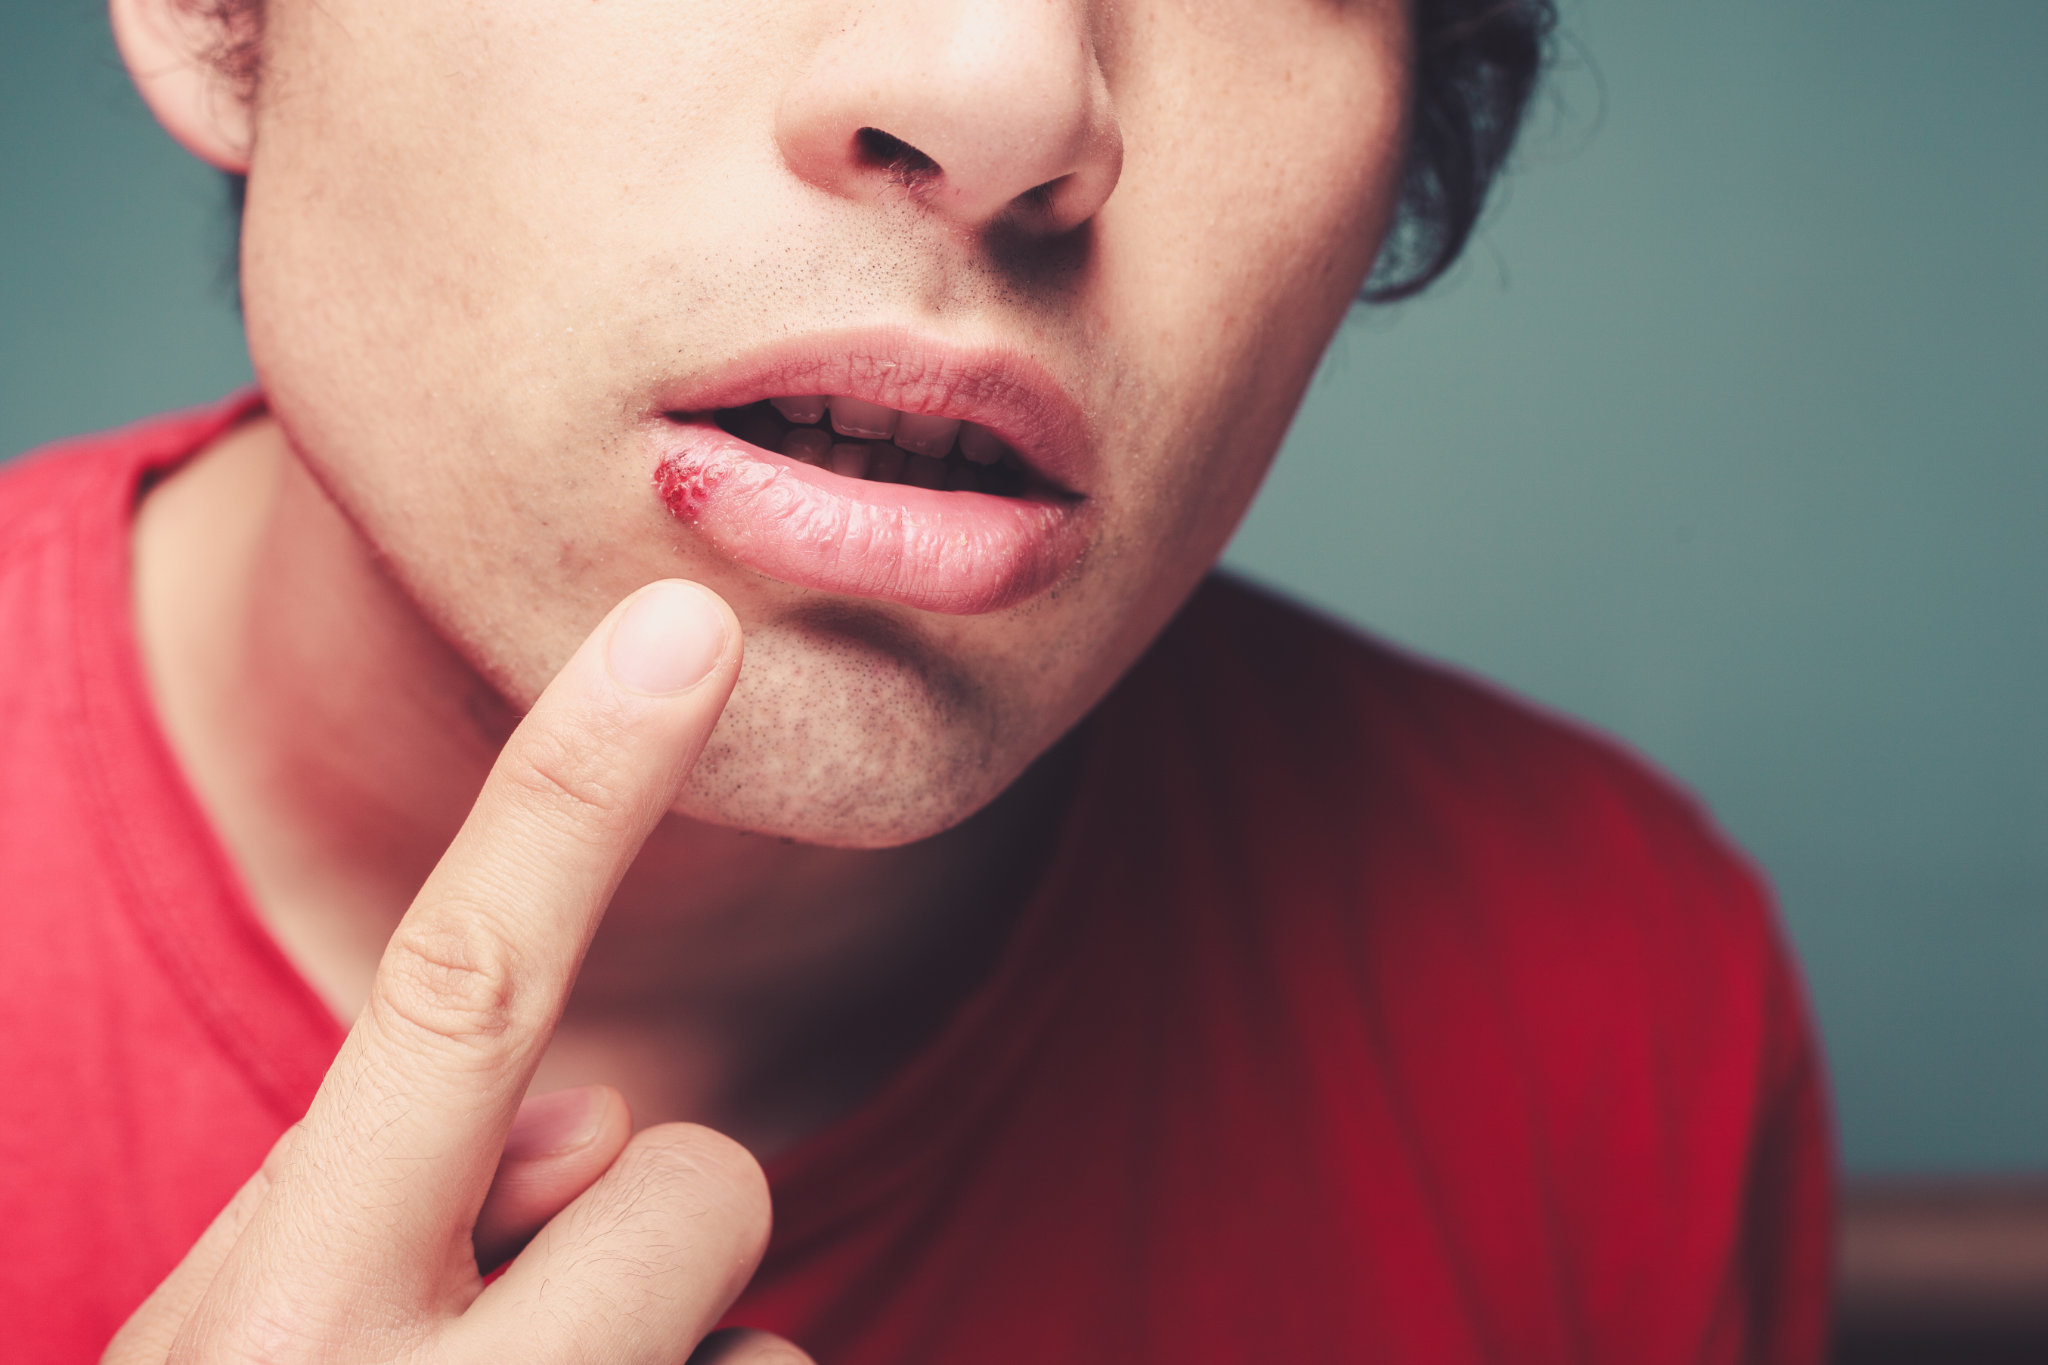 Man with cold sore on lip